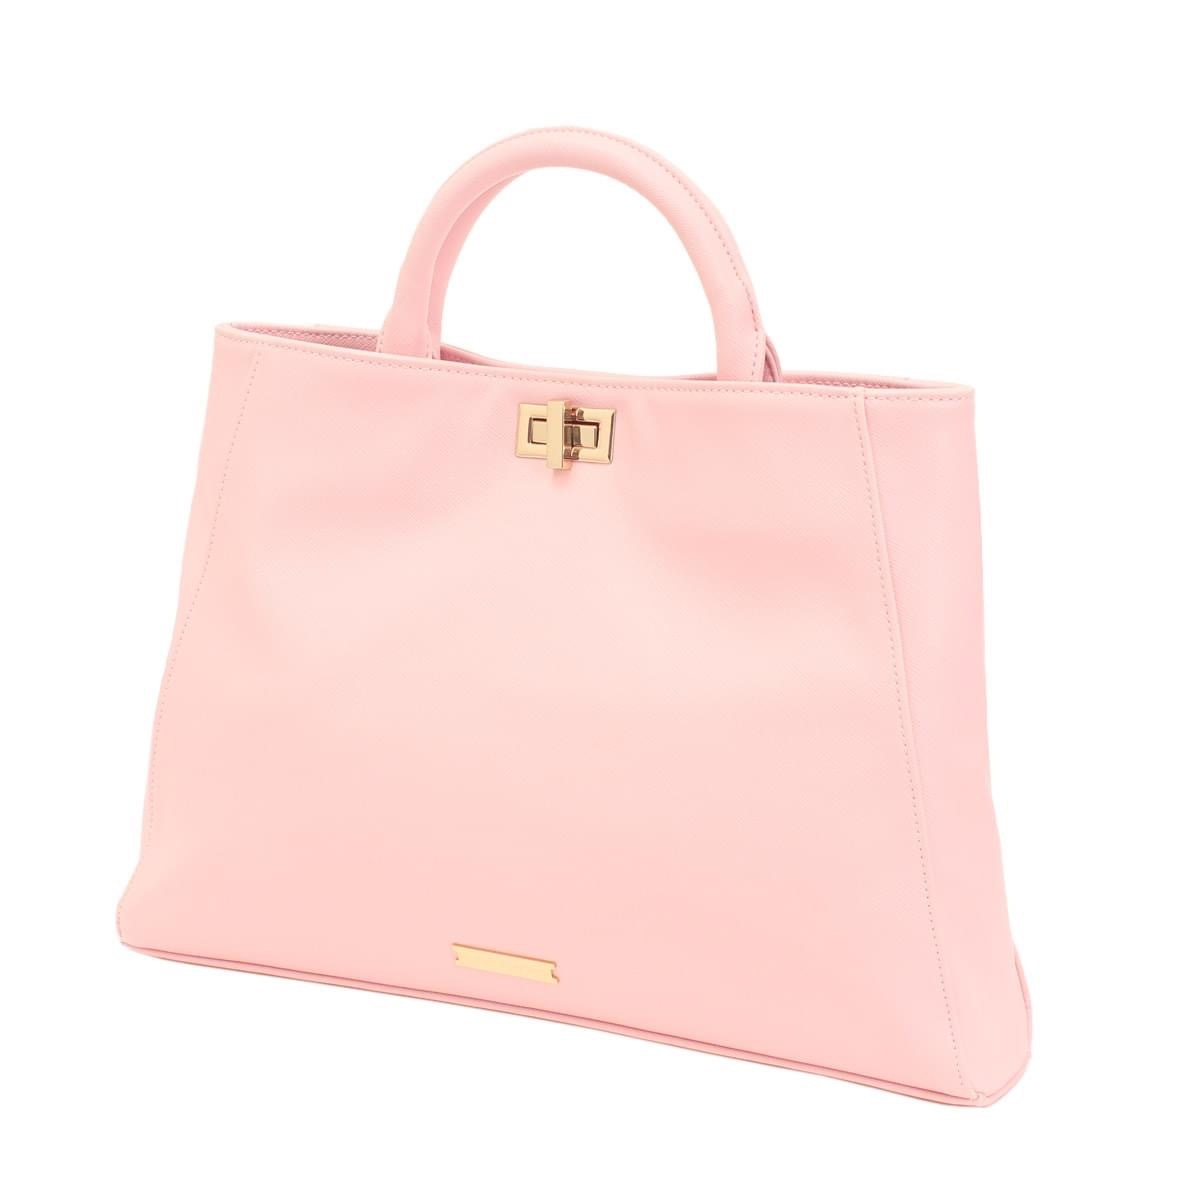 ZARNY COLLECTION/CASSIOPEIA・ROSE PINK